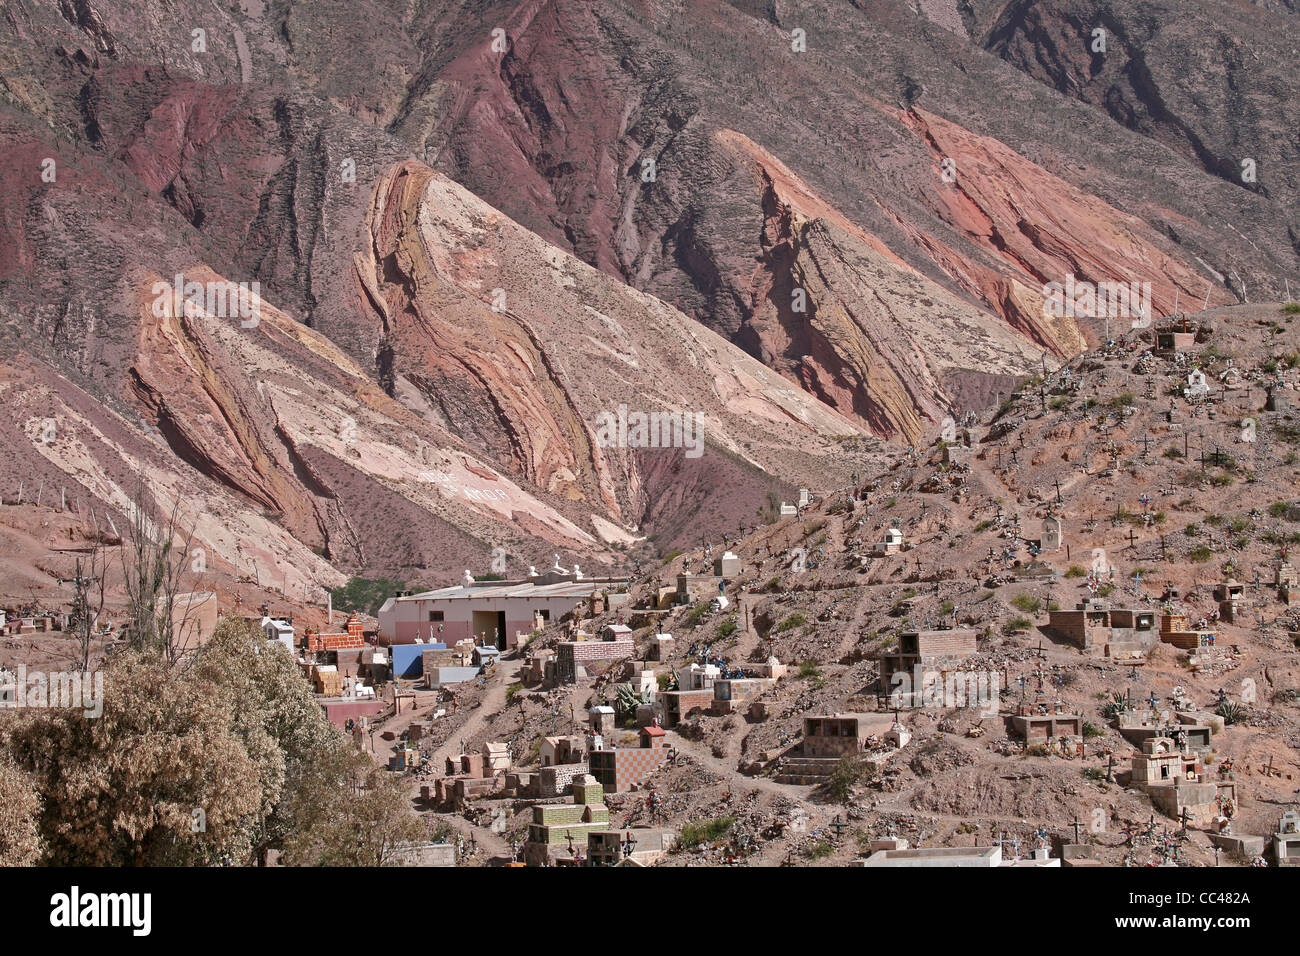 Cemetery in front of the Painter's Palette, Quebrada de Humahuaca, Argentina - Stock Image